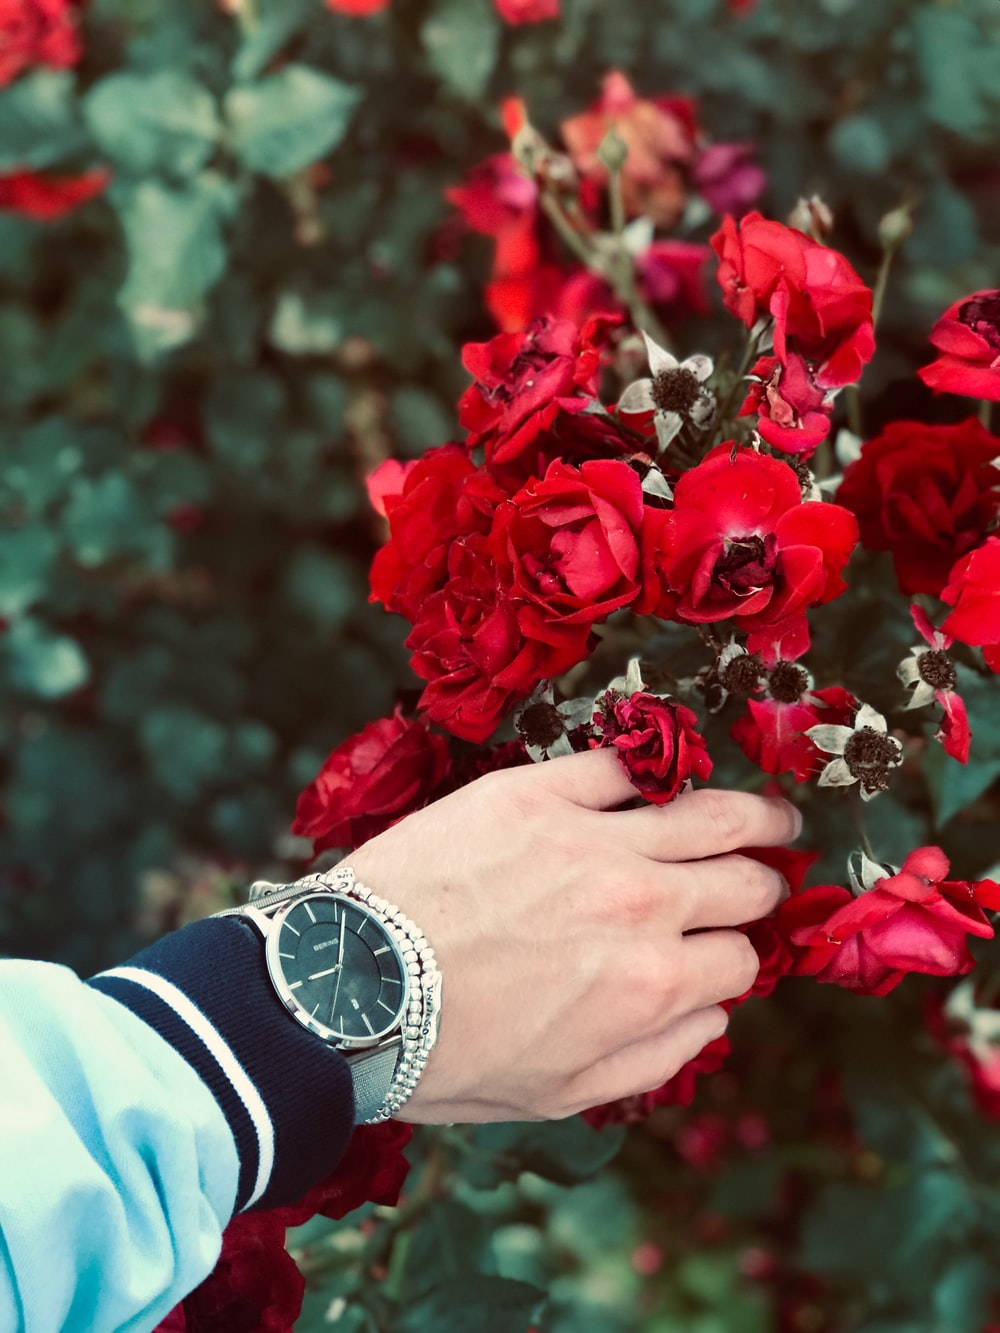 person wearing watch holding red petaled flower